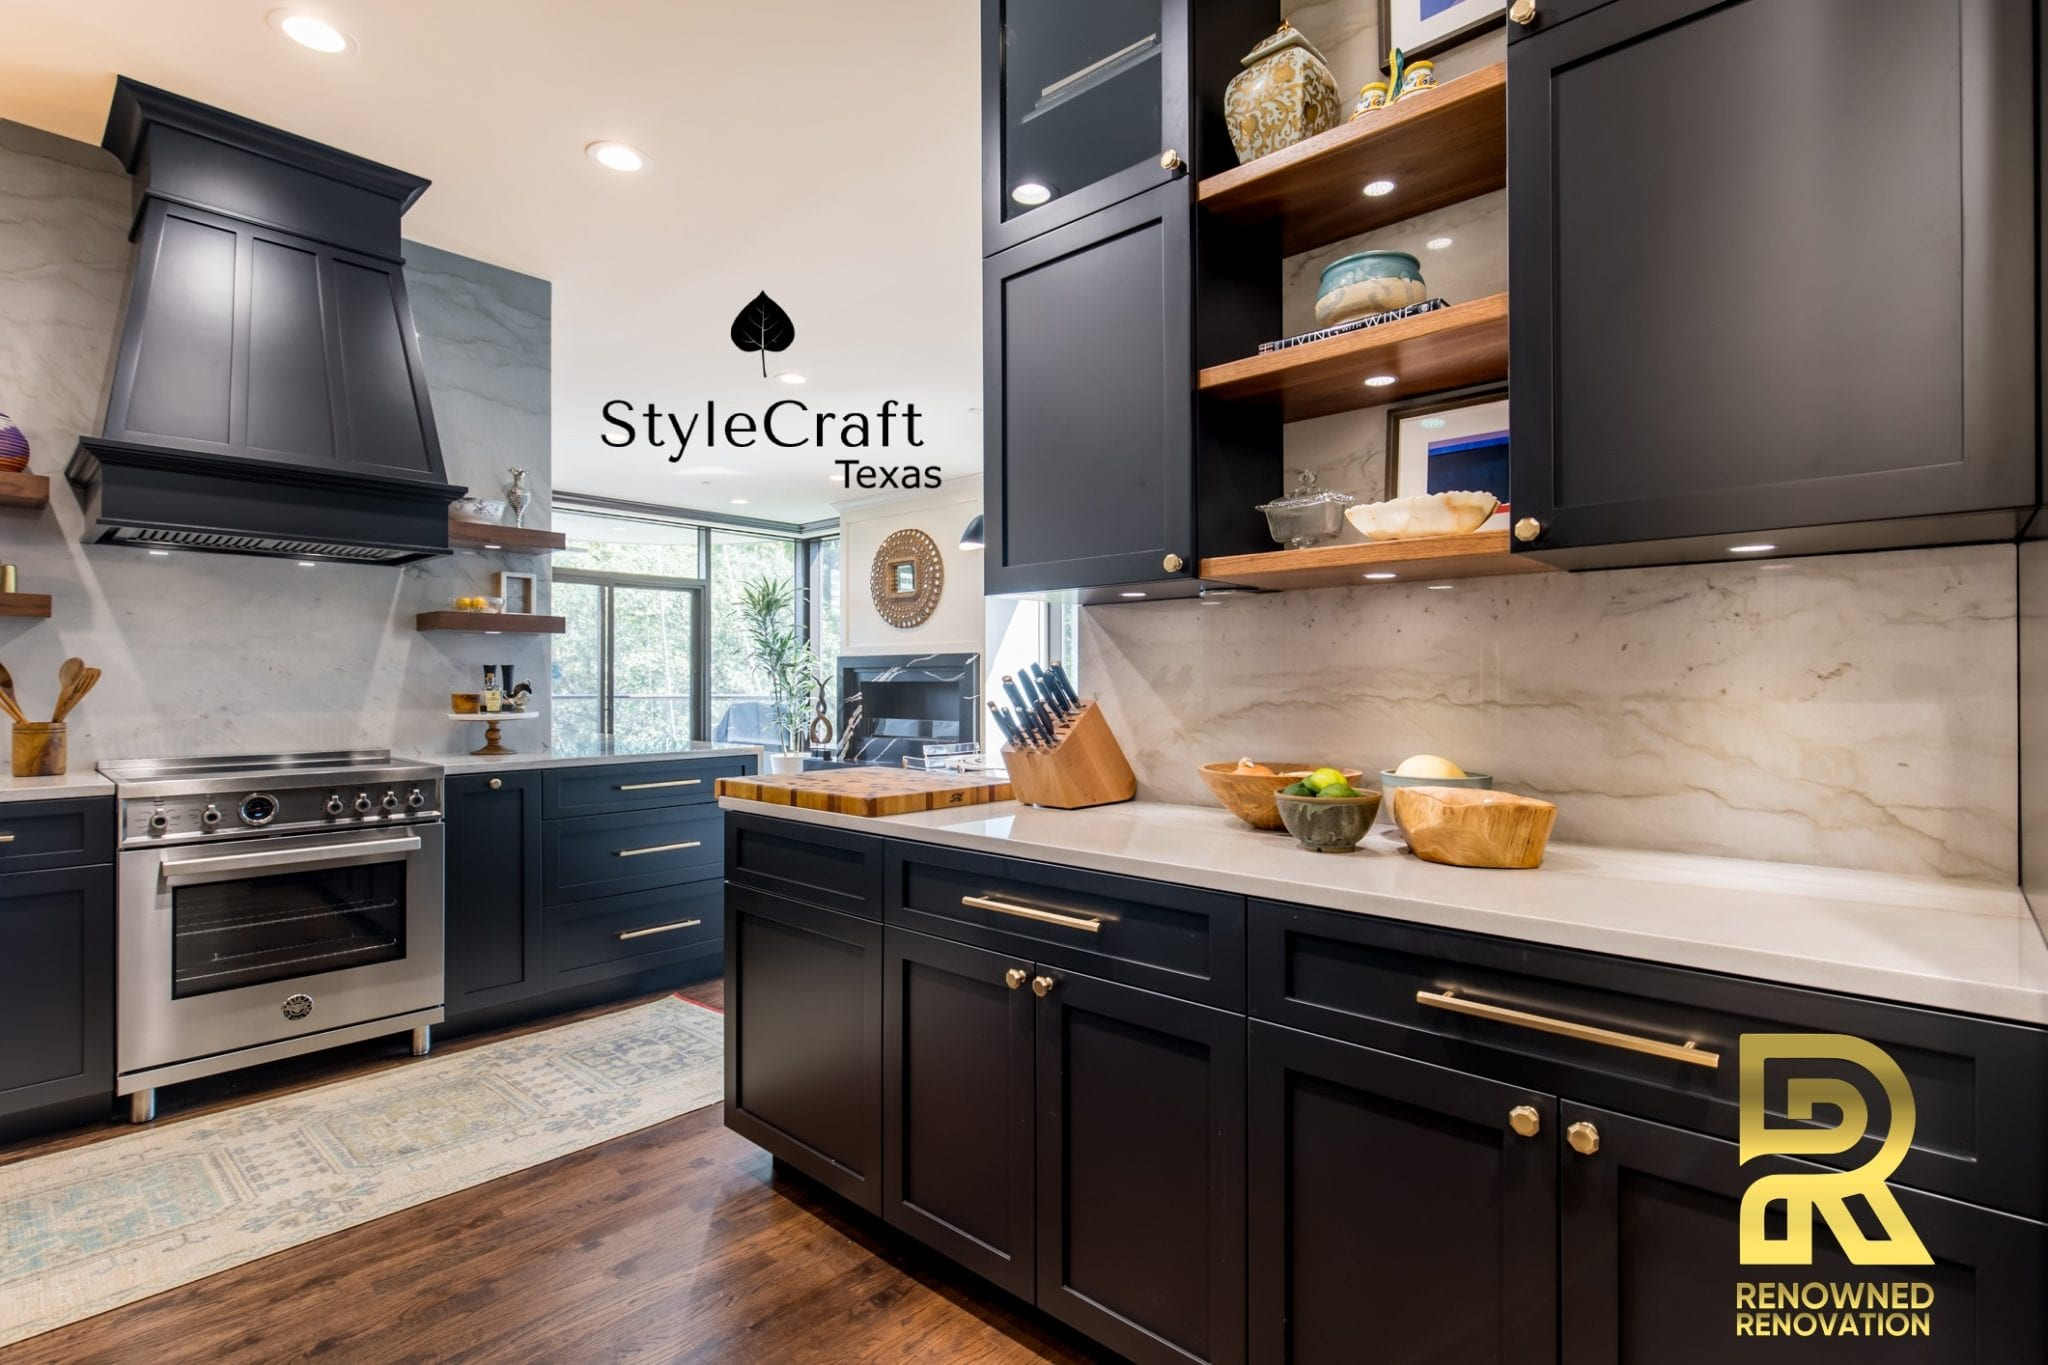 StyleCraft Cabinets Texas makes Custom Cabinetry